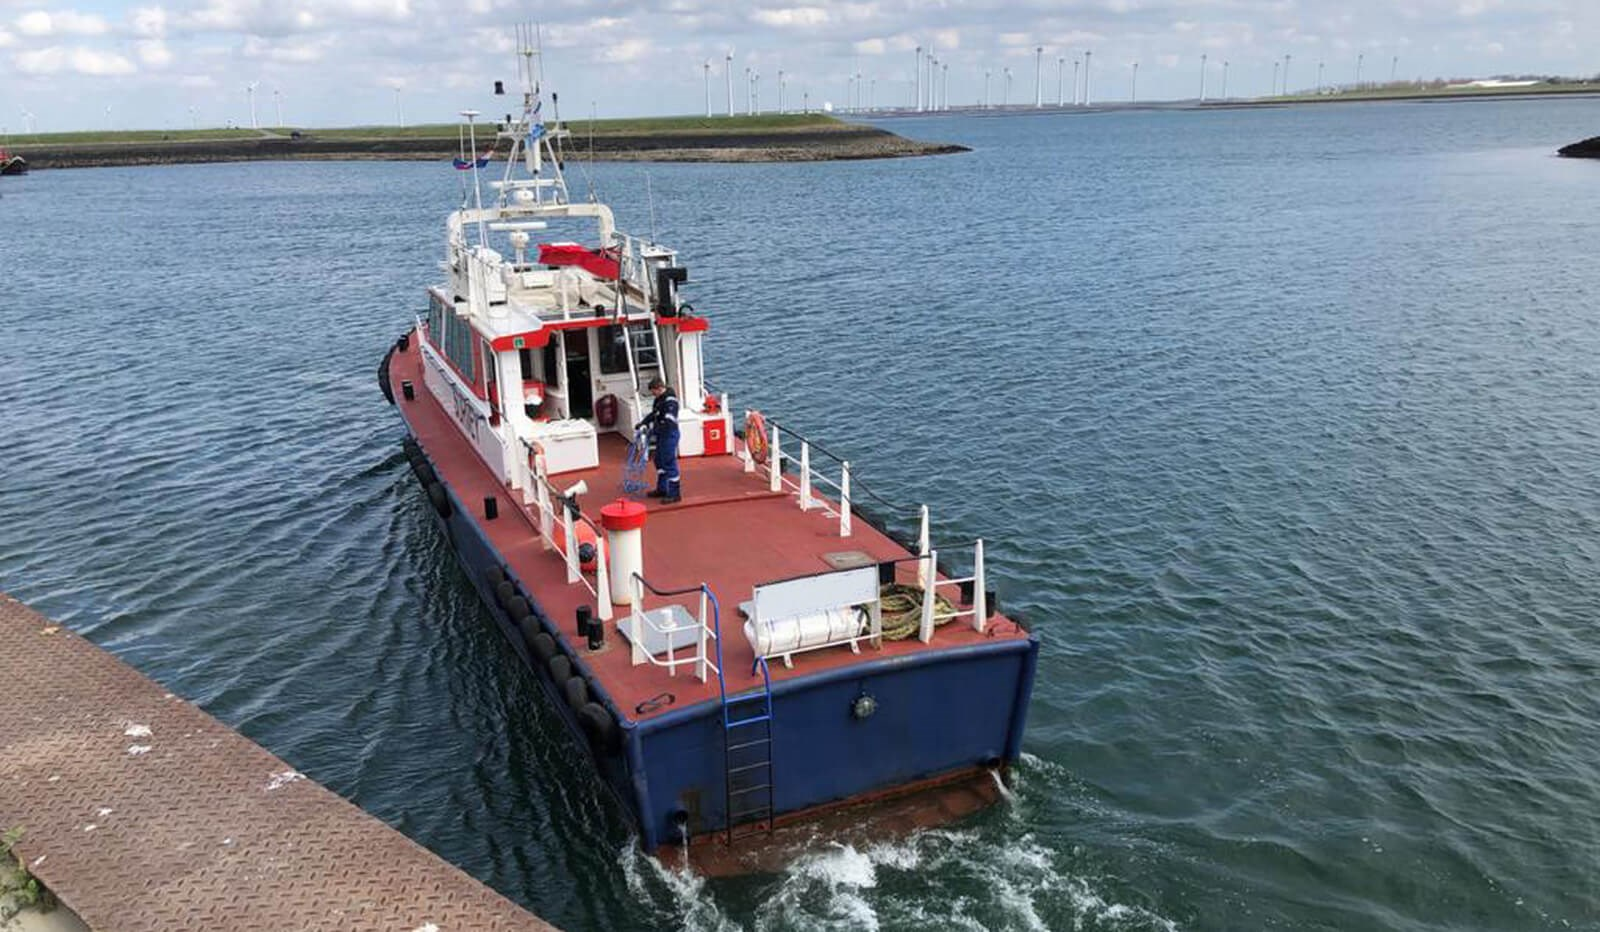 used survey boat in the netherlands for sale 07627 (5)